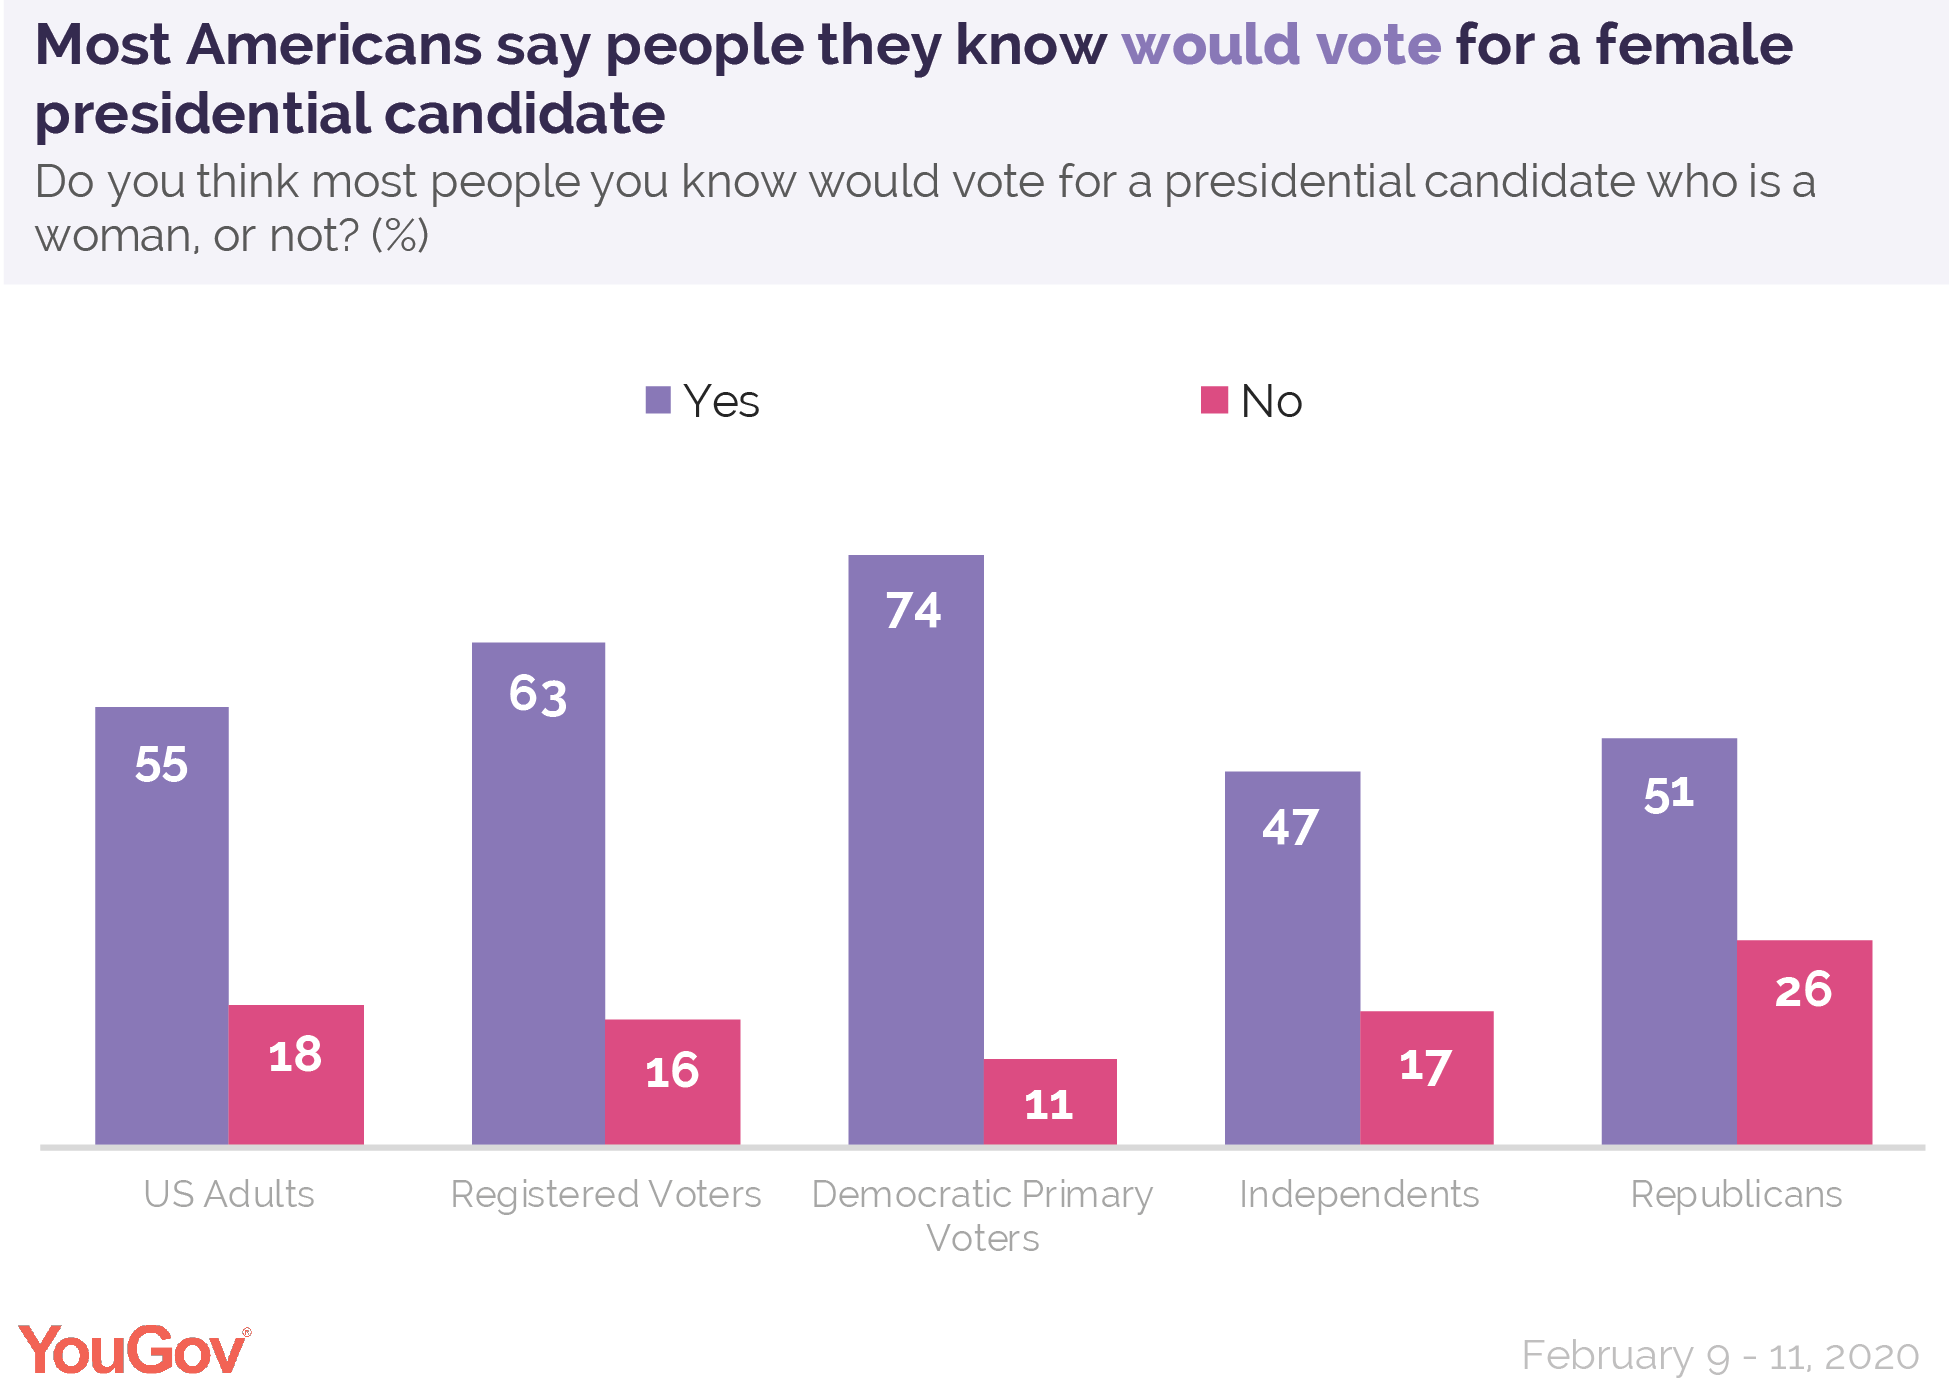 Most Americans say people they know would vote for a female presidential candidate